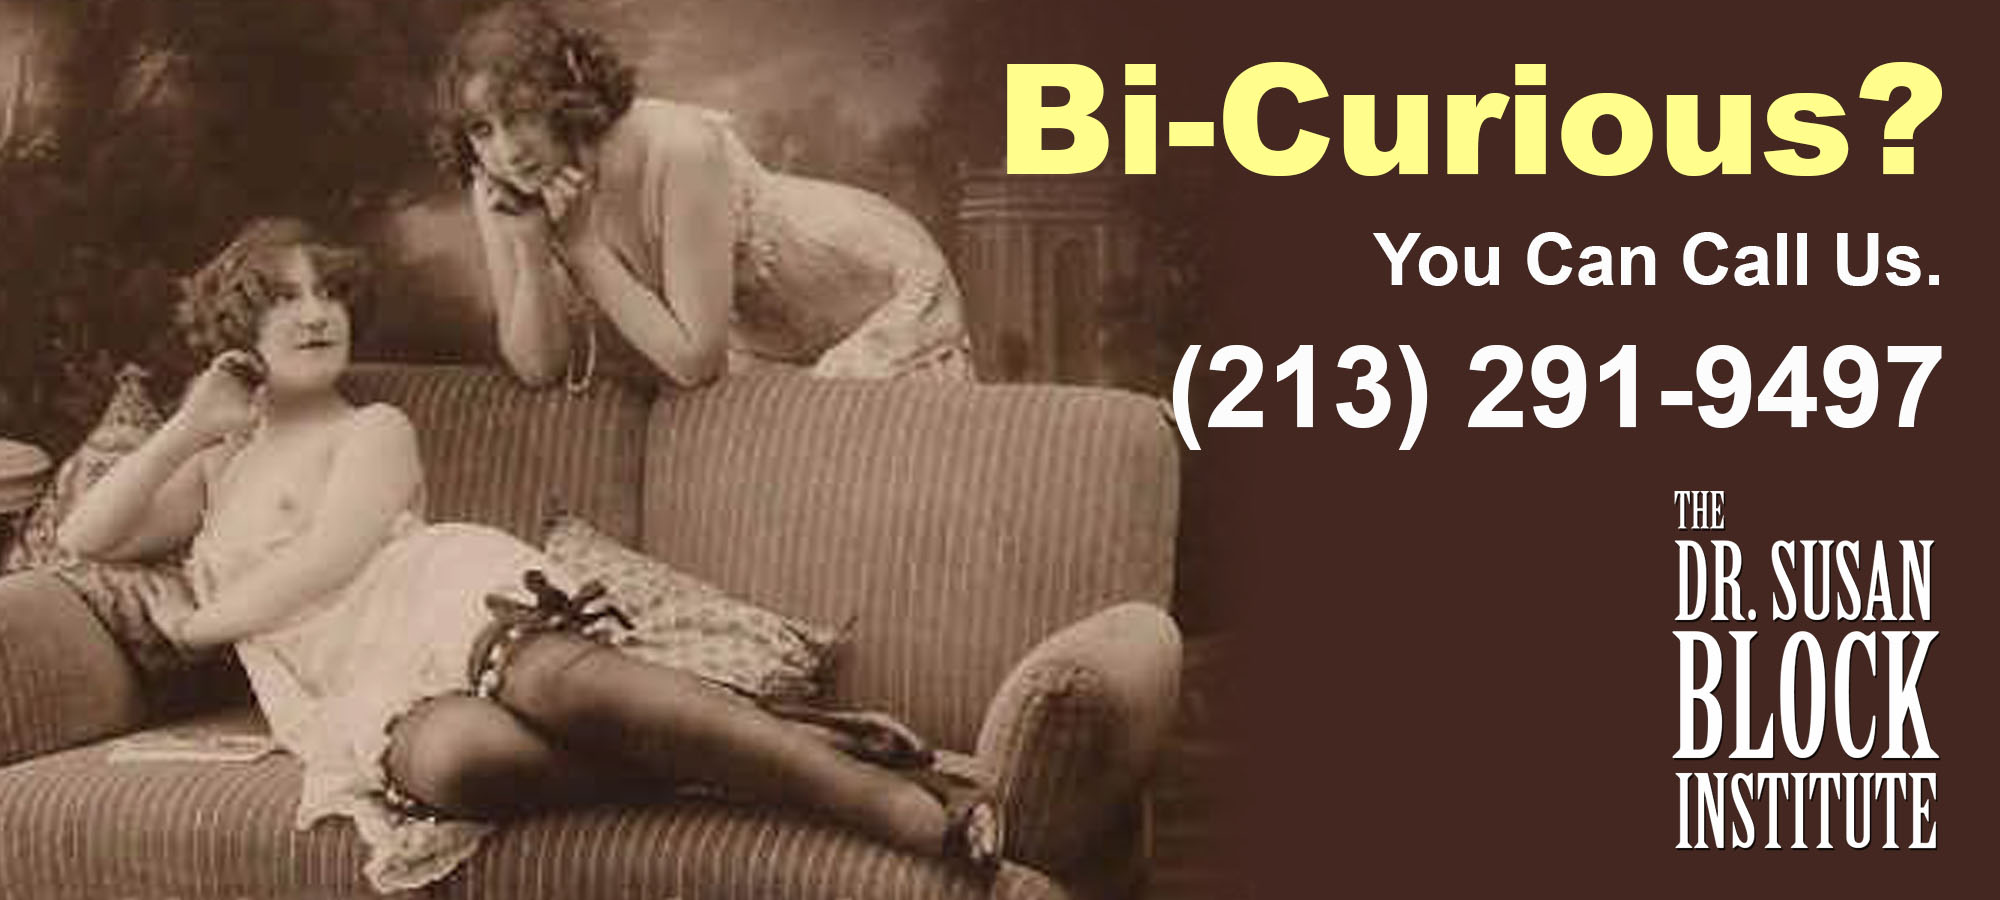 BiCuriousWomen